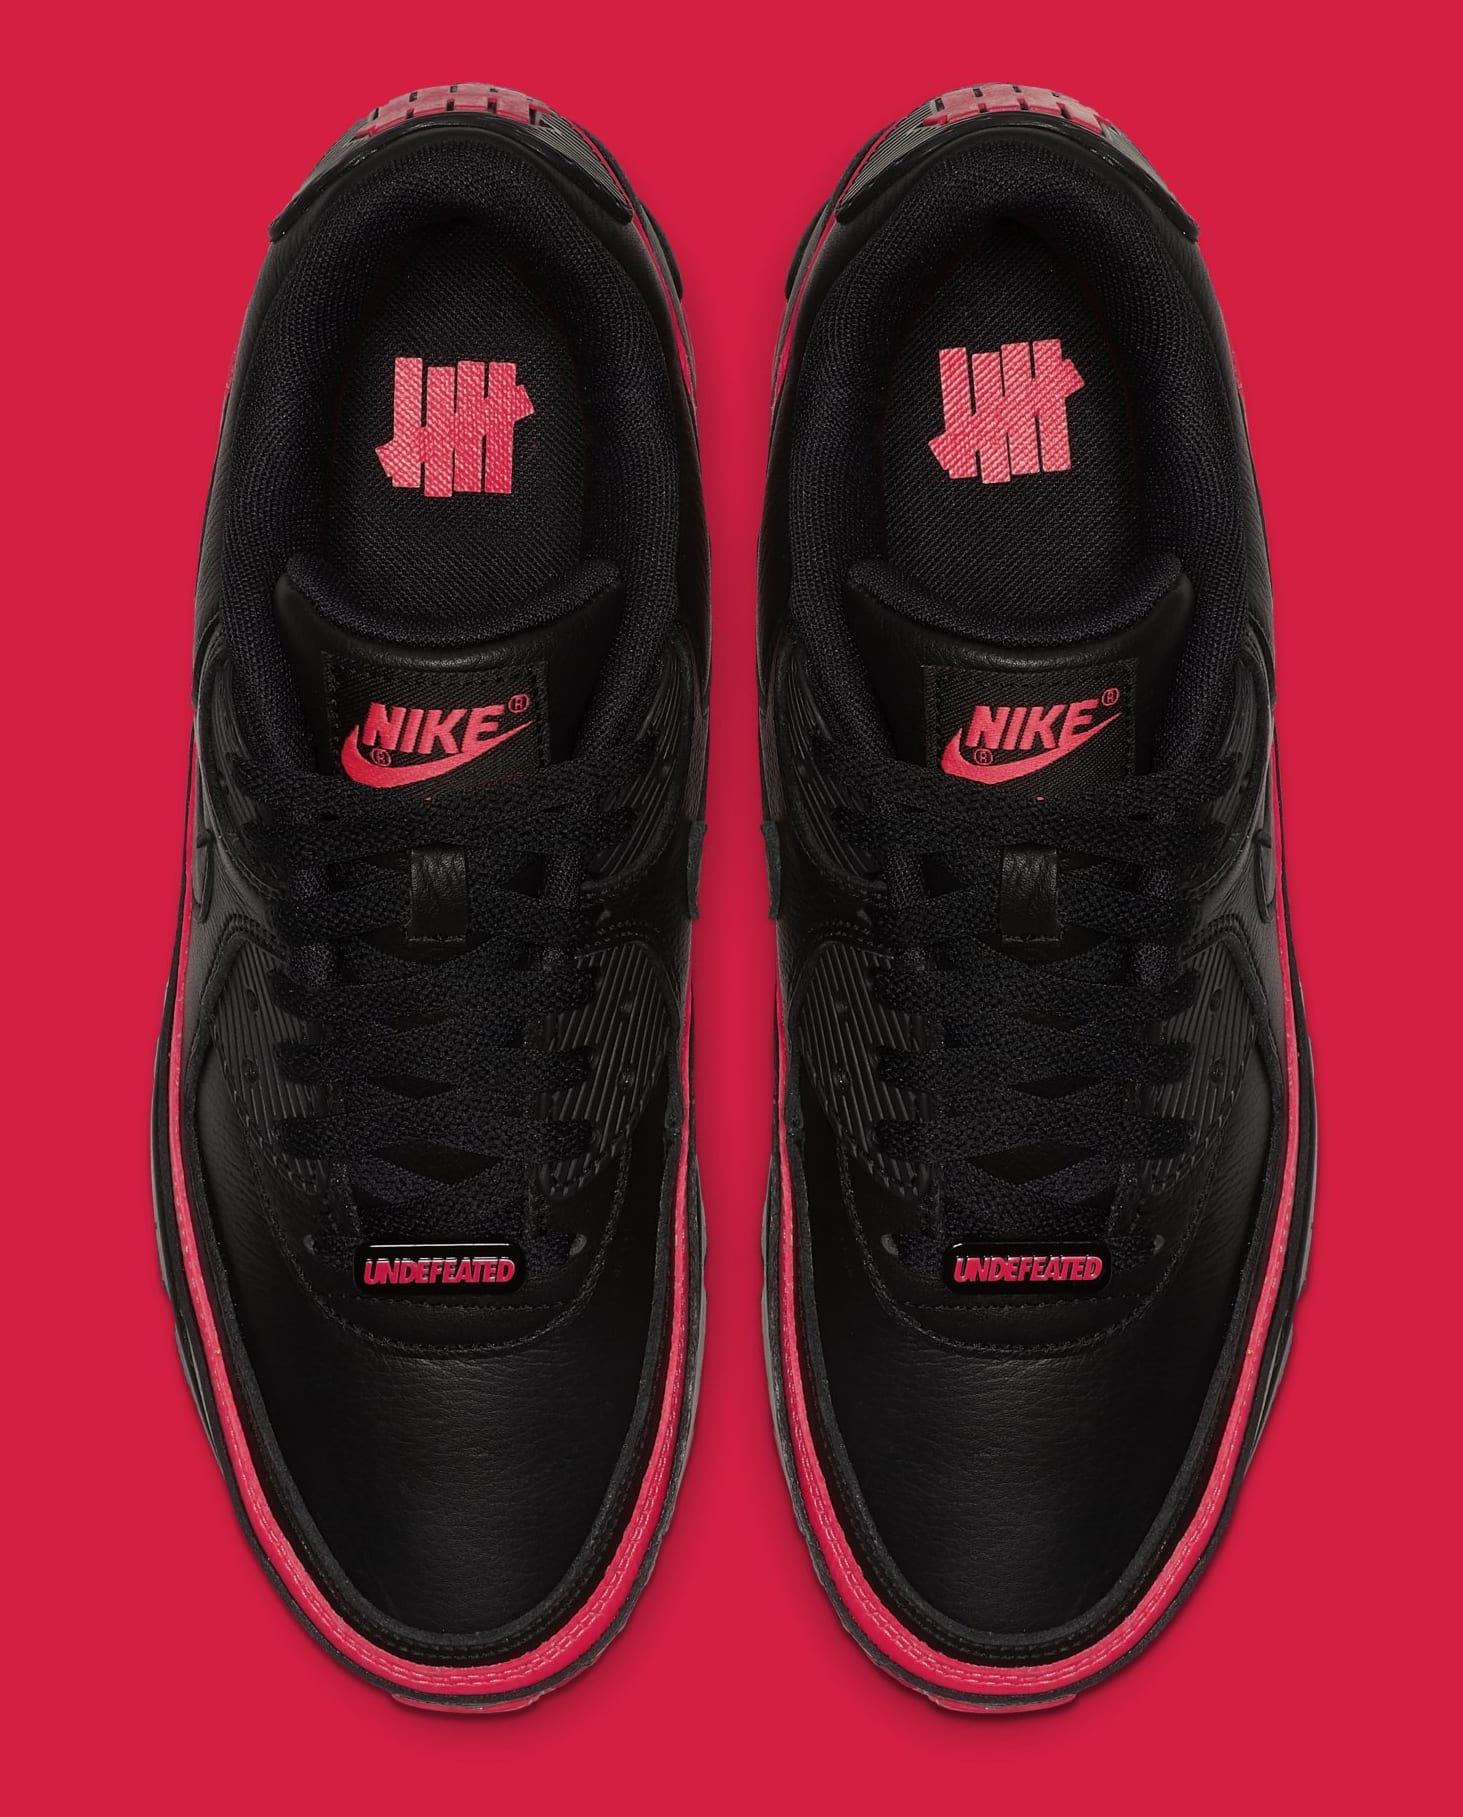 undefeated-nike-air-max-90-black-solar-red-cj7197-003-top